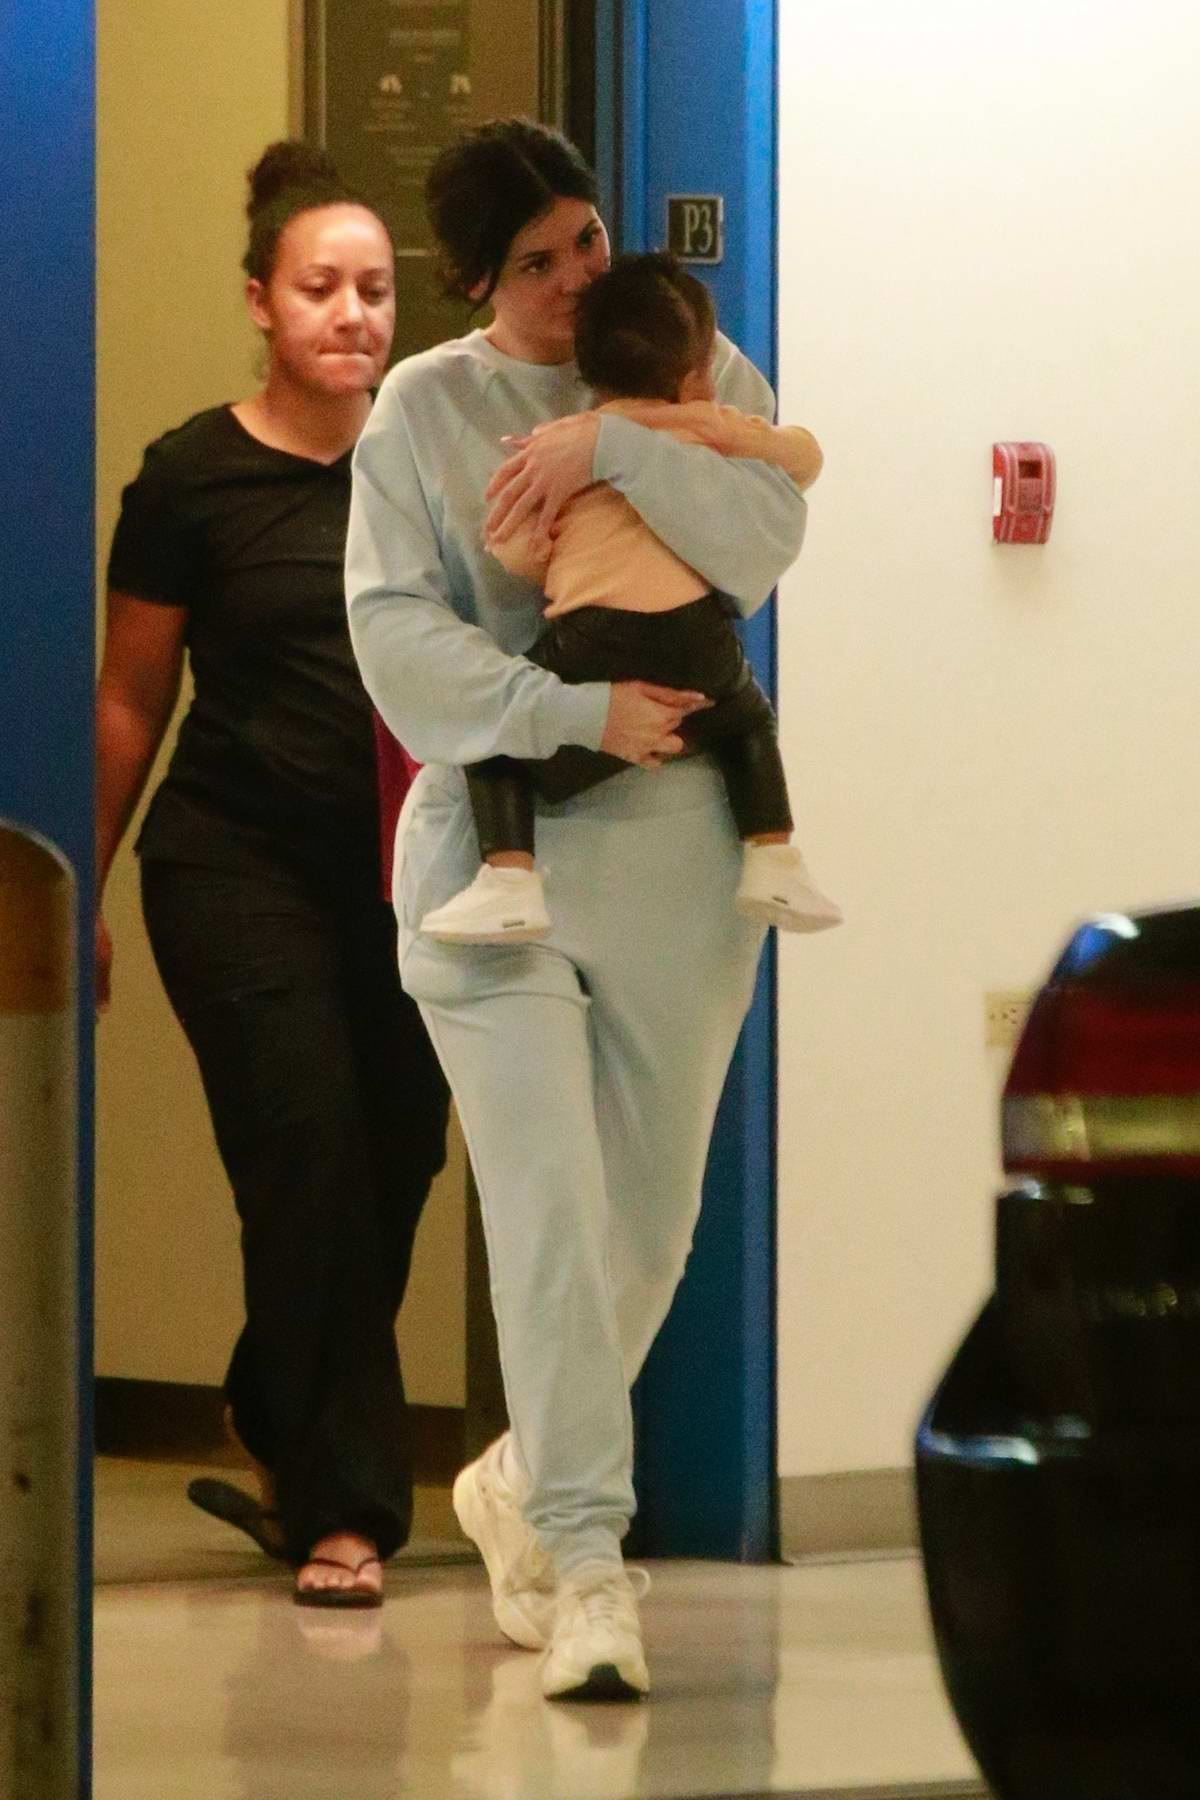 Kylie Jenner finishes a shopping outing with her daughter Stormi at Barneys New York in Beverly Hill, Los Angeles